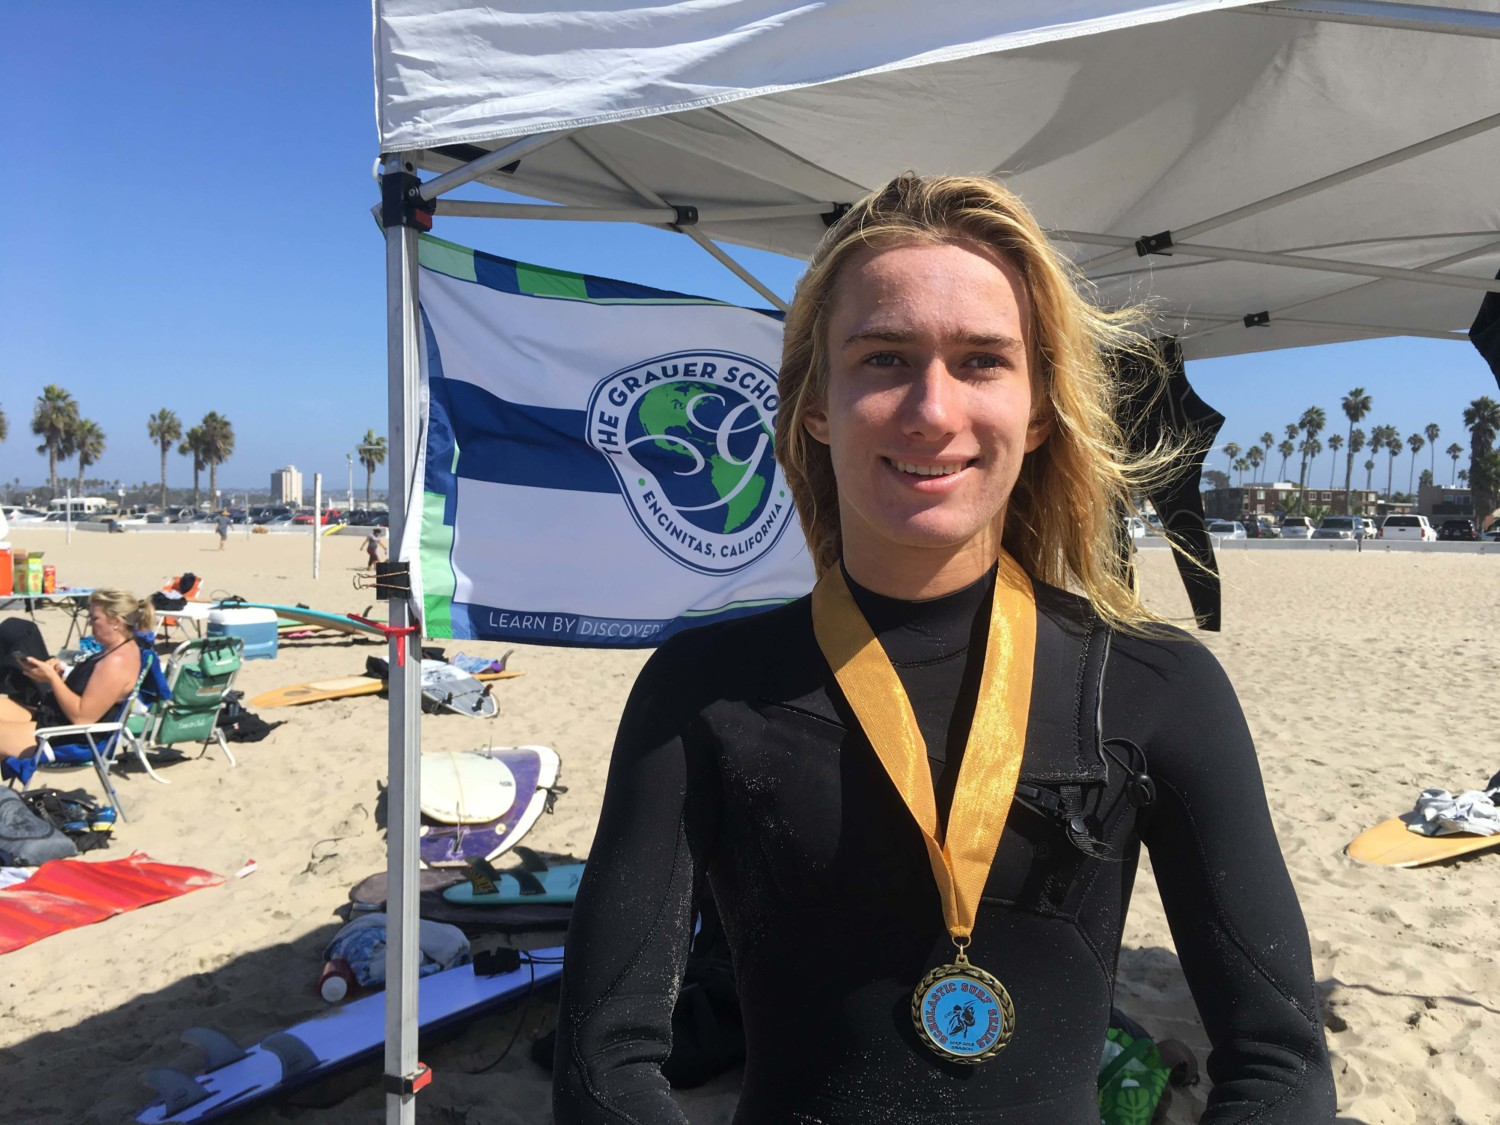 Waterspot: Yes, he's a surfer